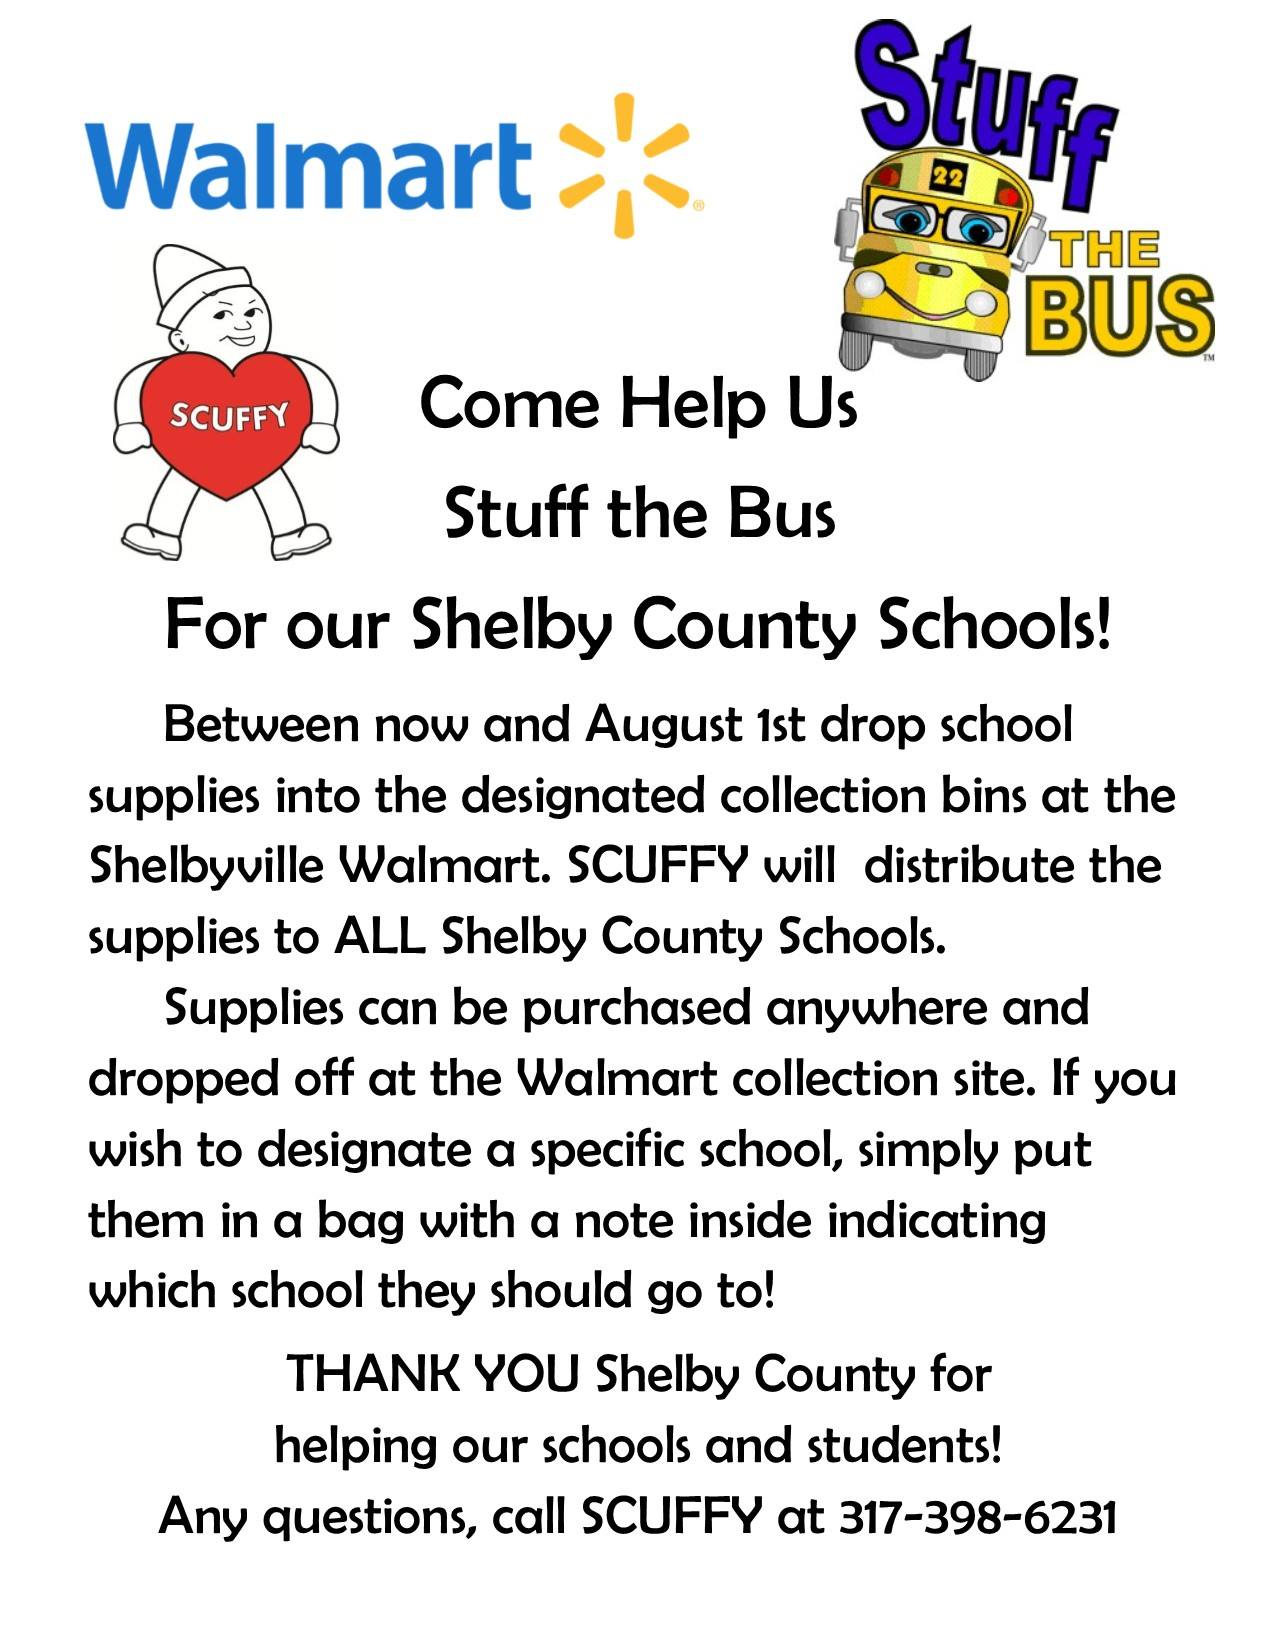 Stuff the Bus for Shelby County Schools